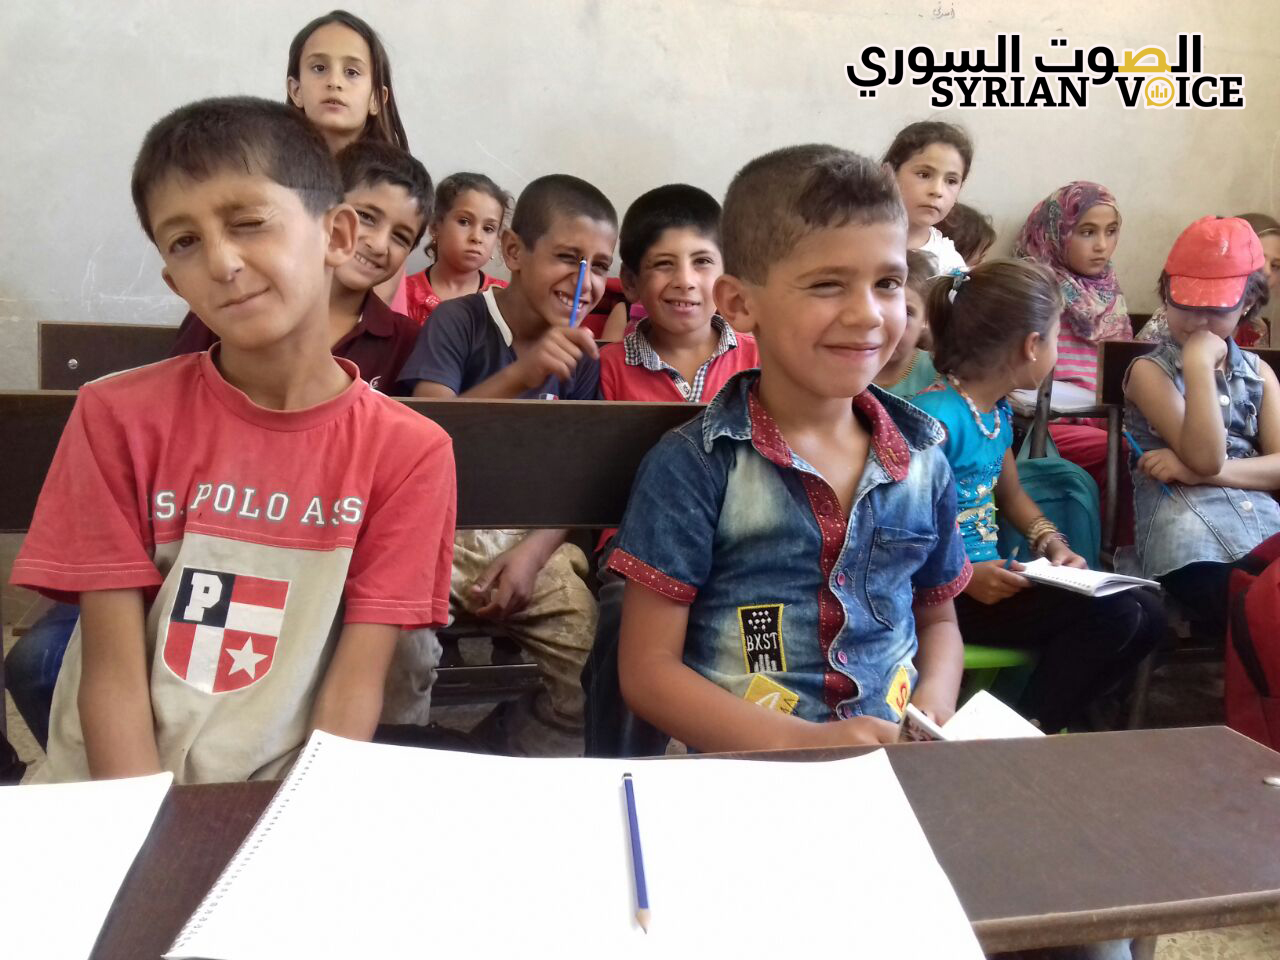 In rebel-controlled Idlib regime schools continue to operate alongside opposition alternatives